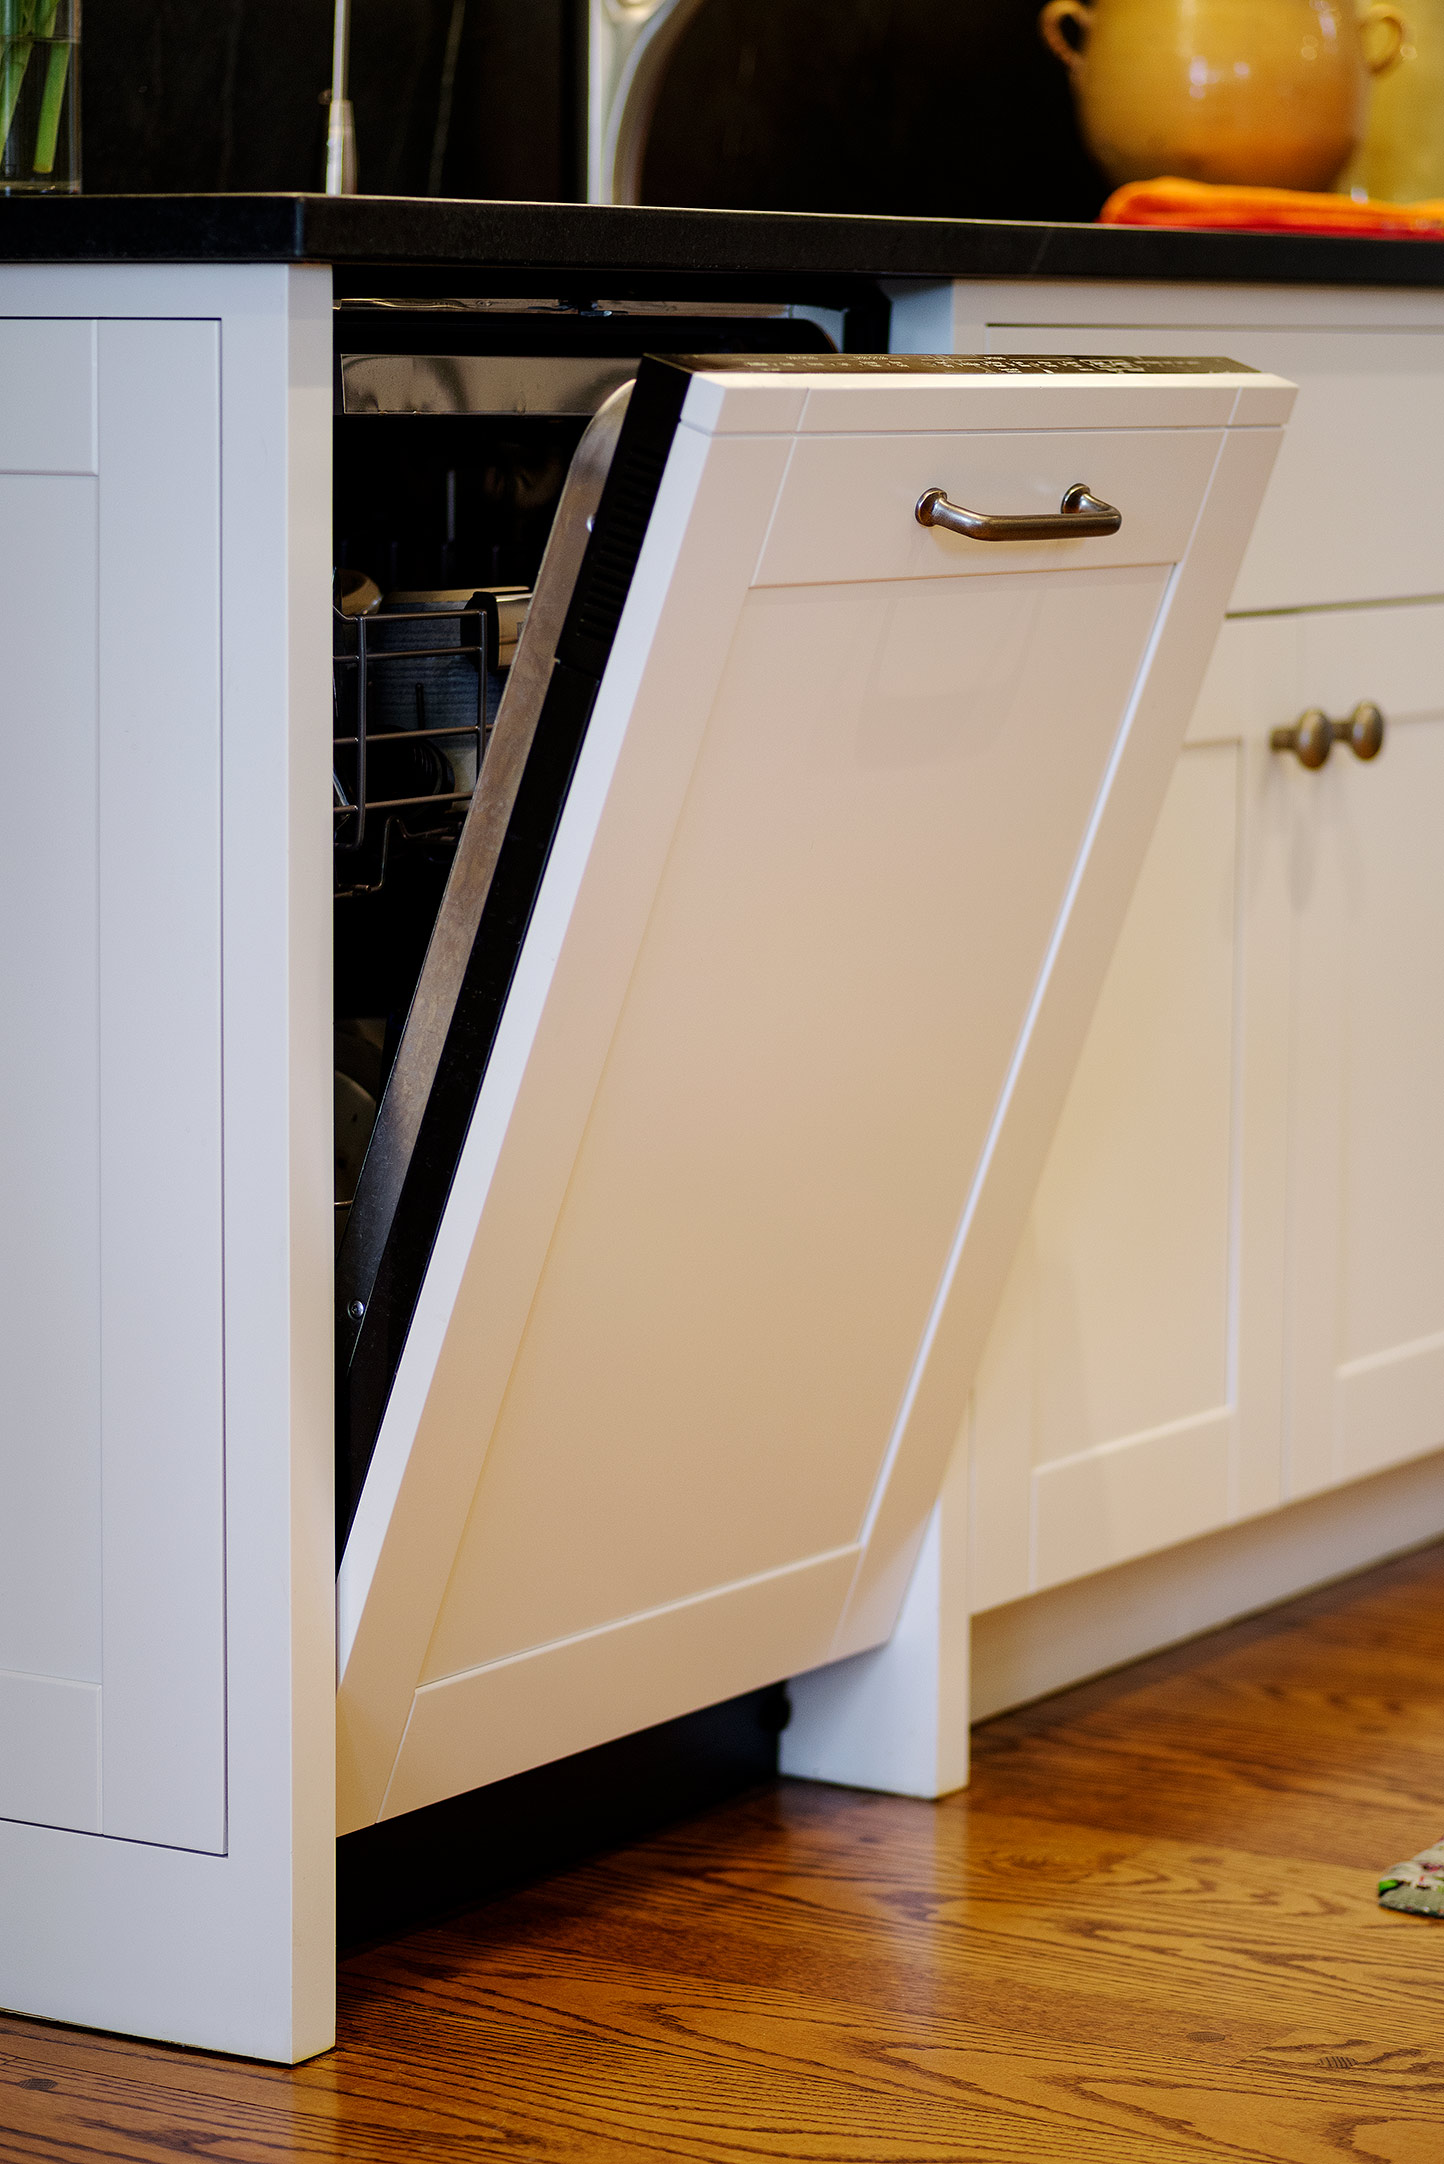 Dishwasher Appliance Panel